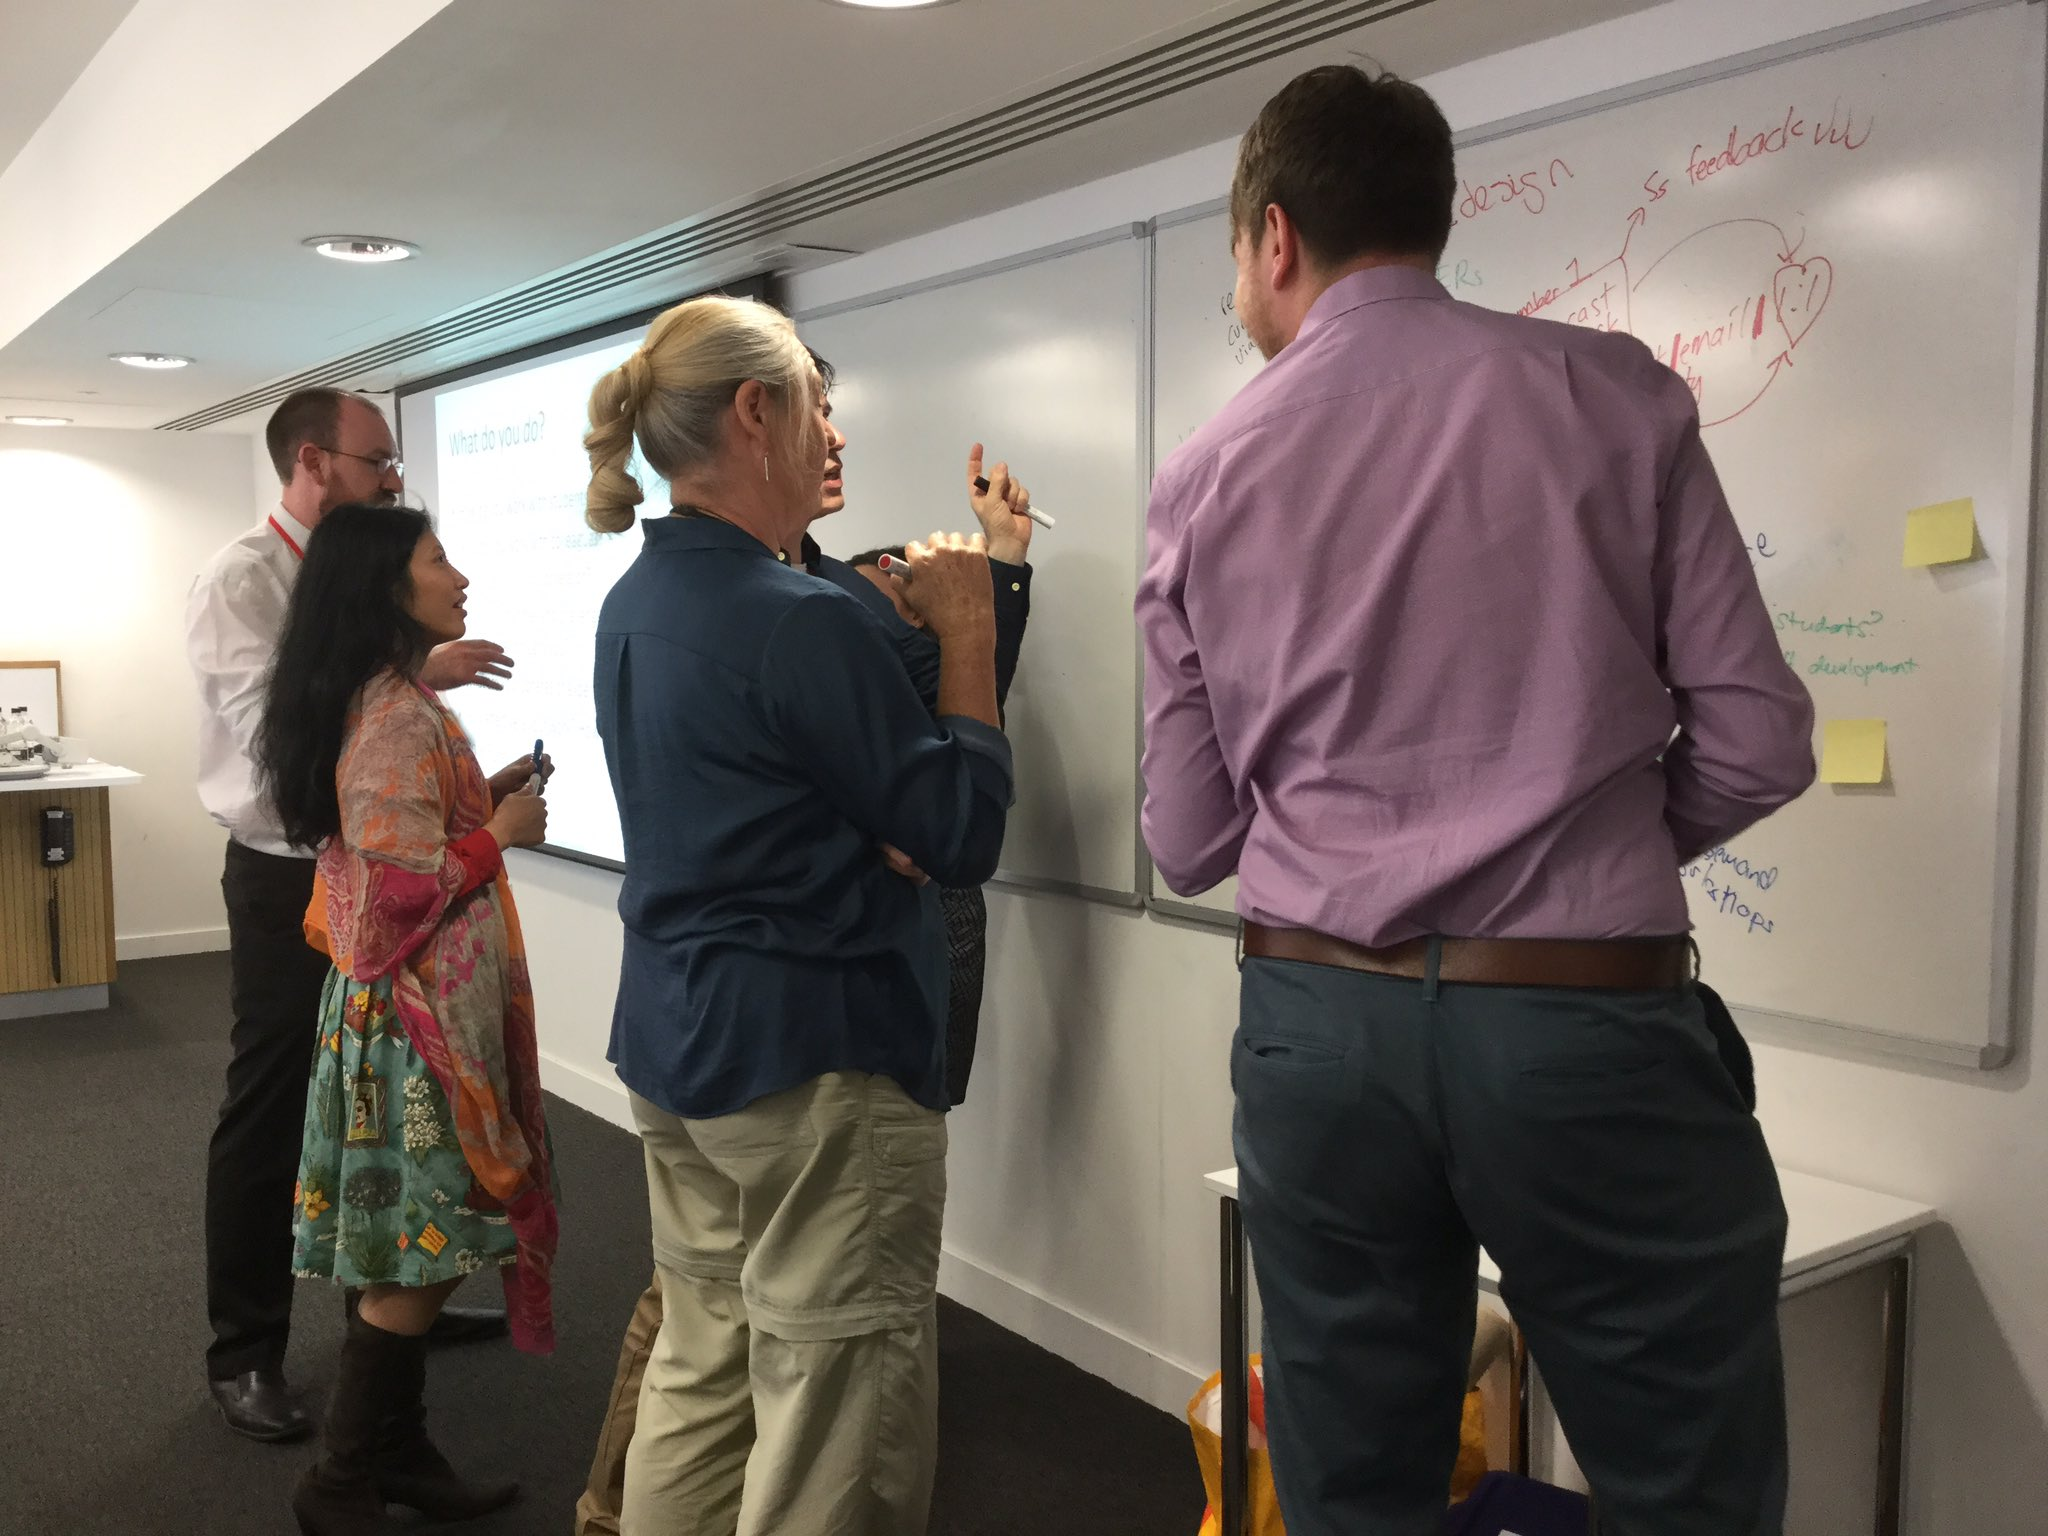 Professional collaborations underway at #aldcon or is it just that everyone really secretly wants to write on the whiteboard? #teachingperk https://t.co/7hjO9kwfi8